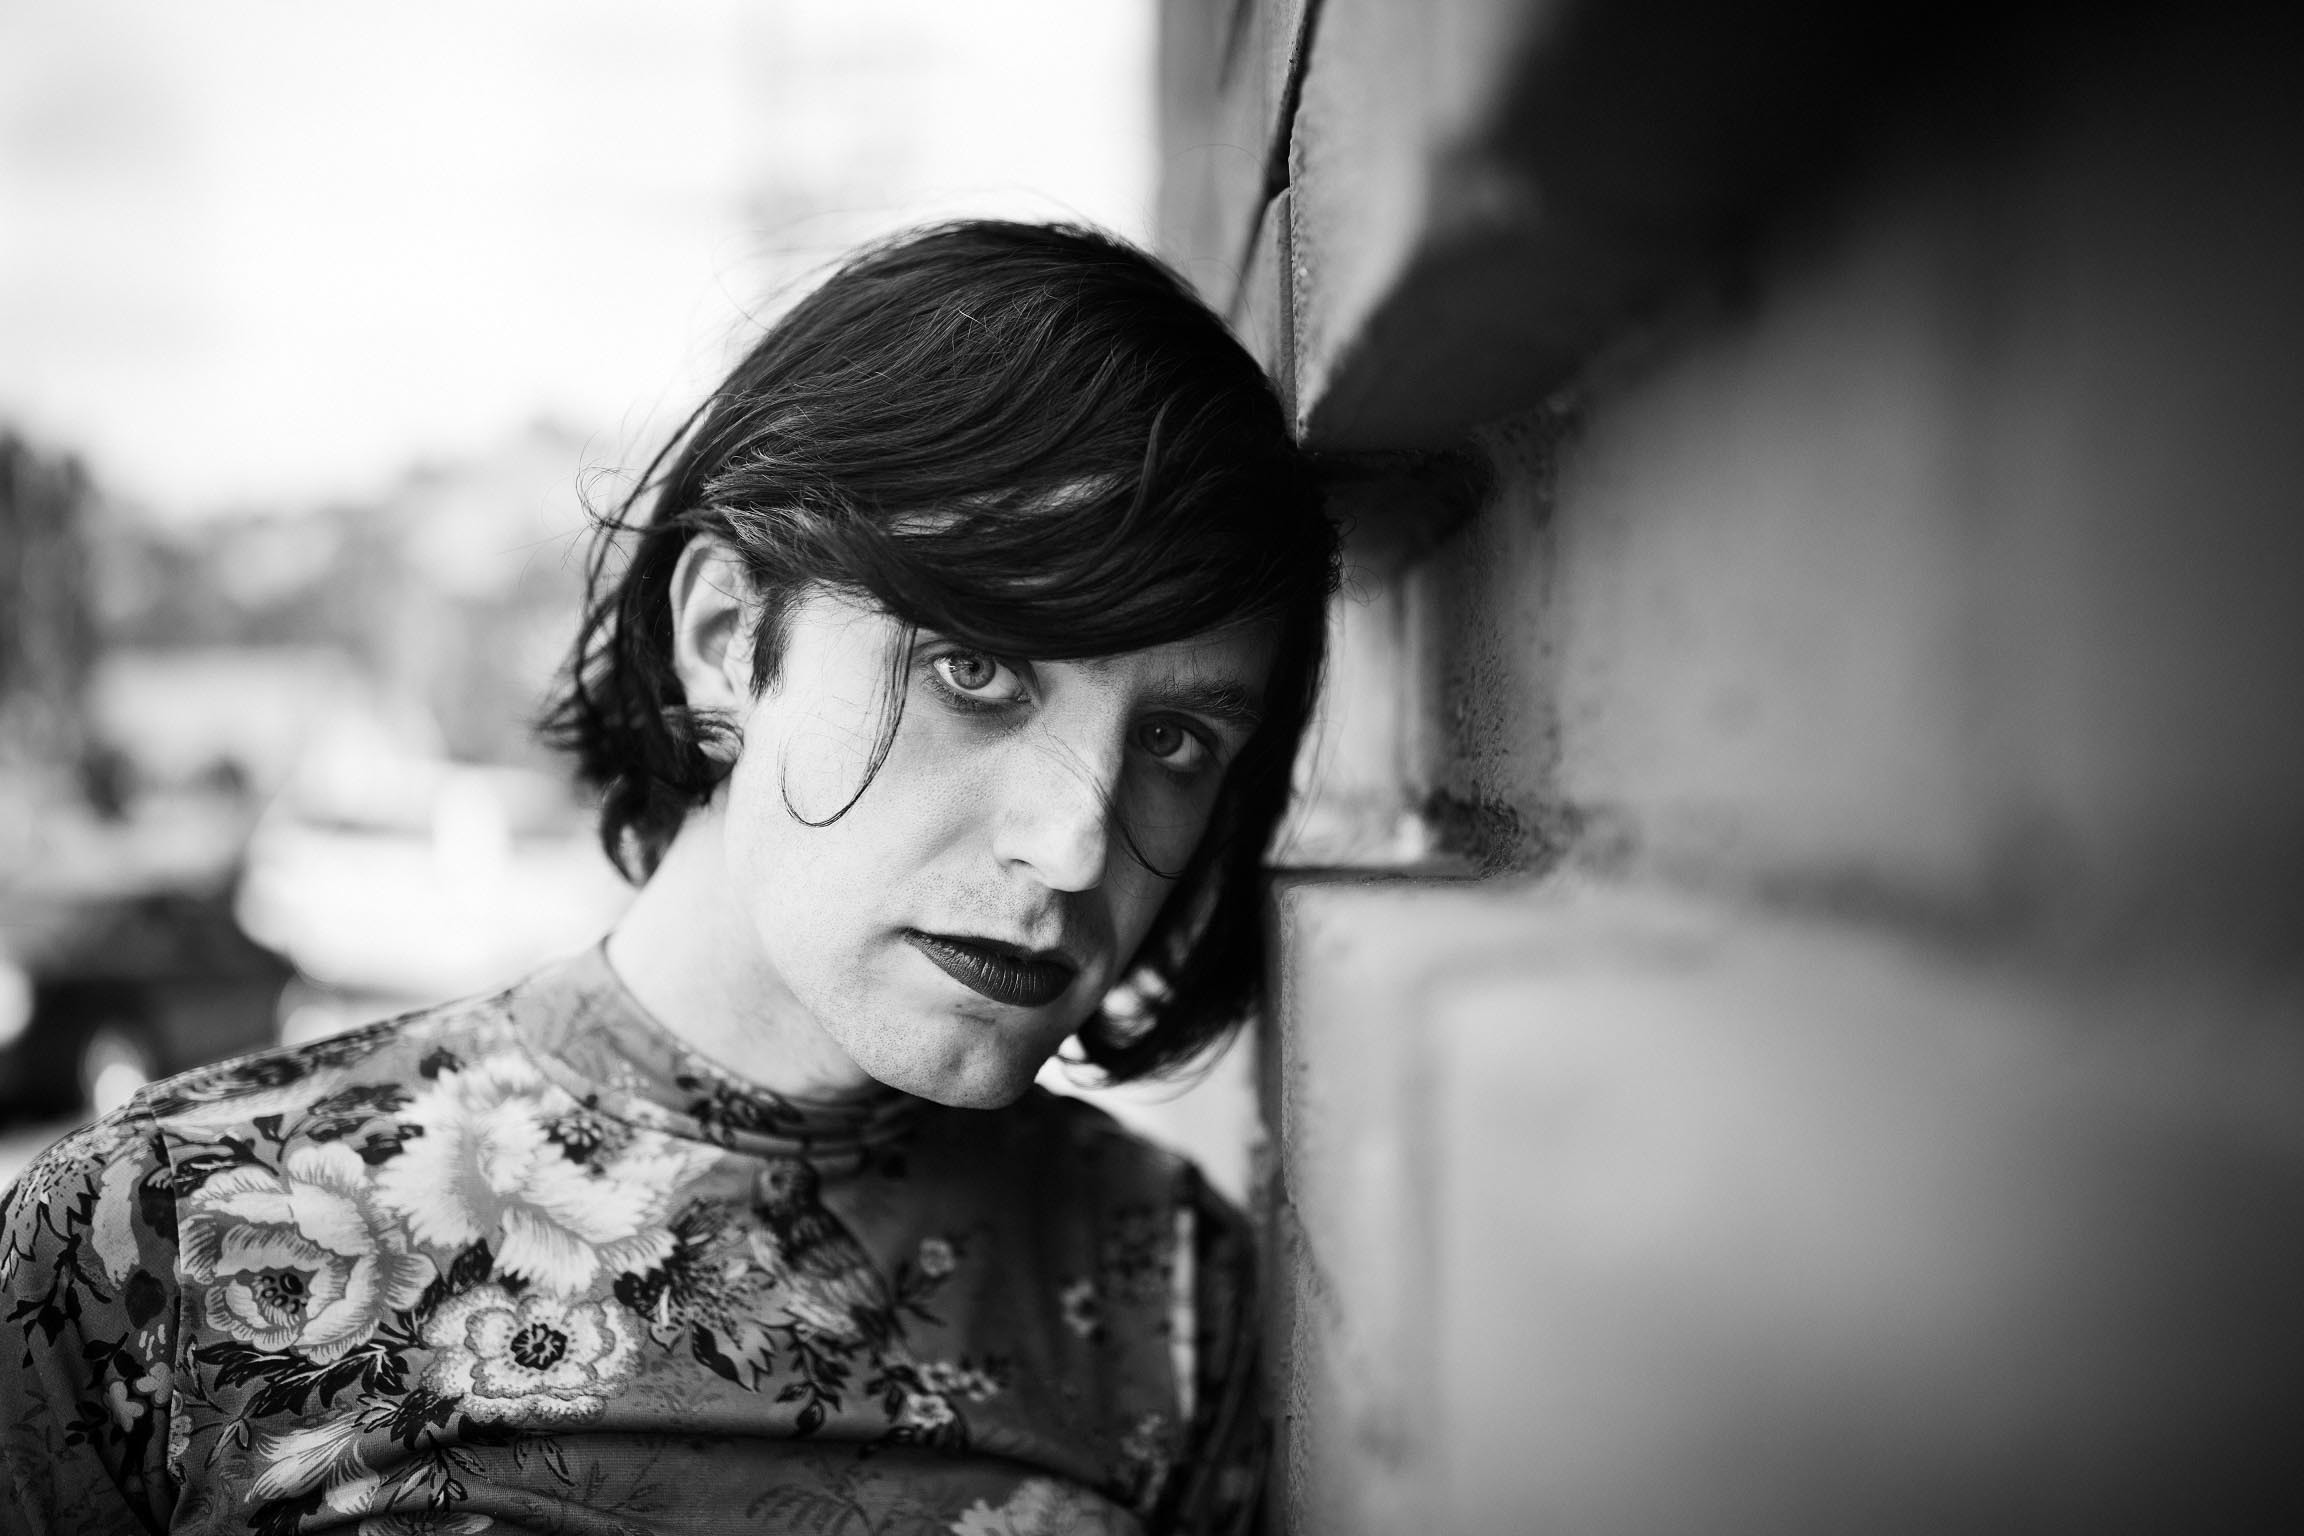 Ezra Furman shares two new songs